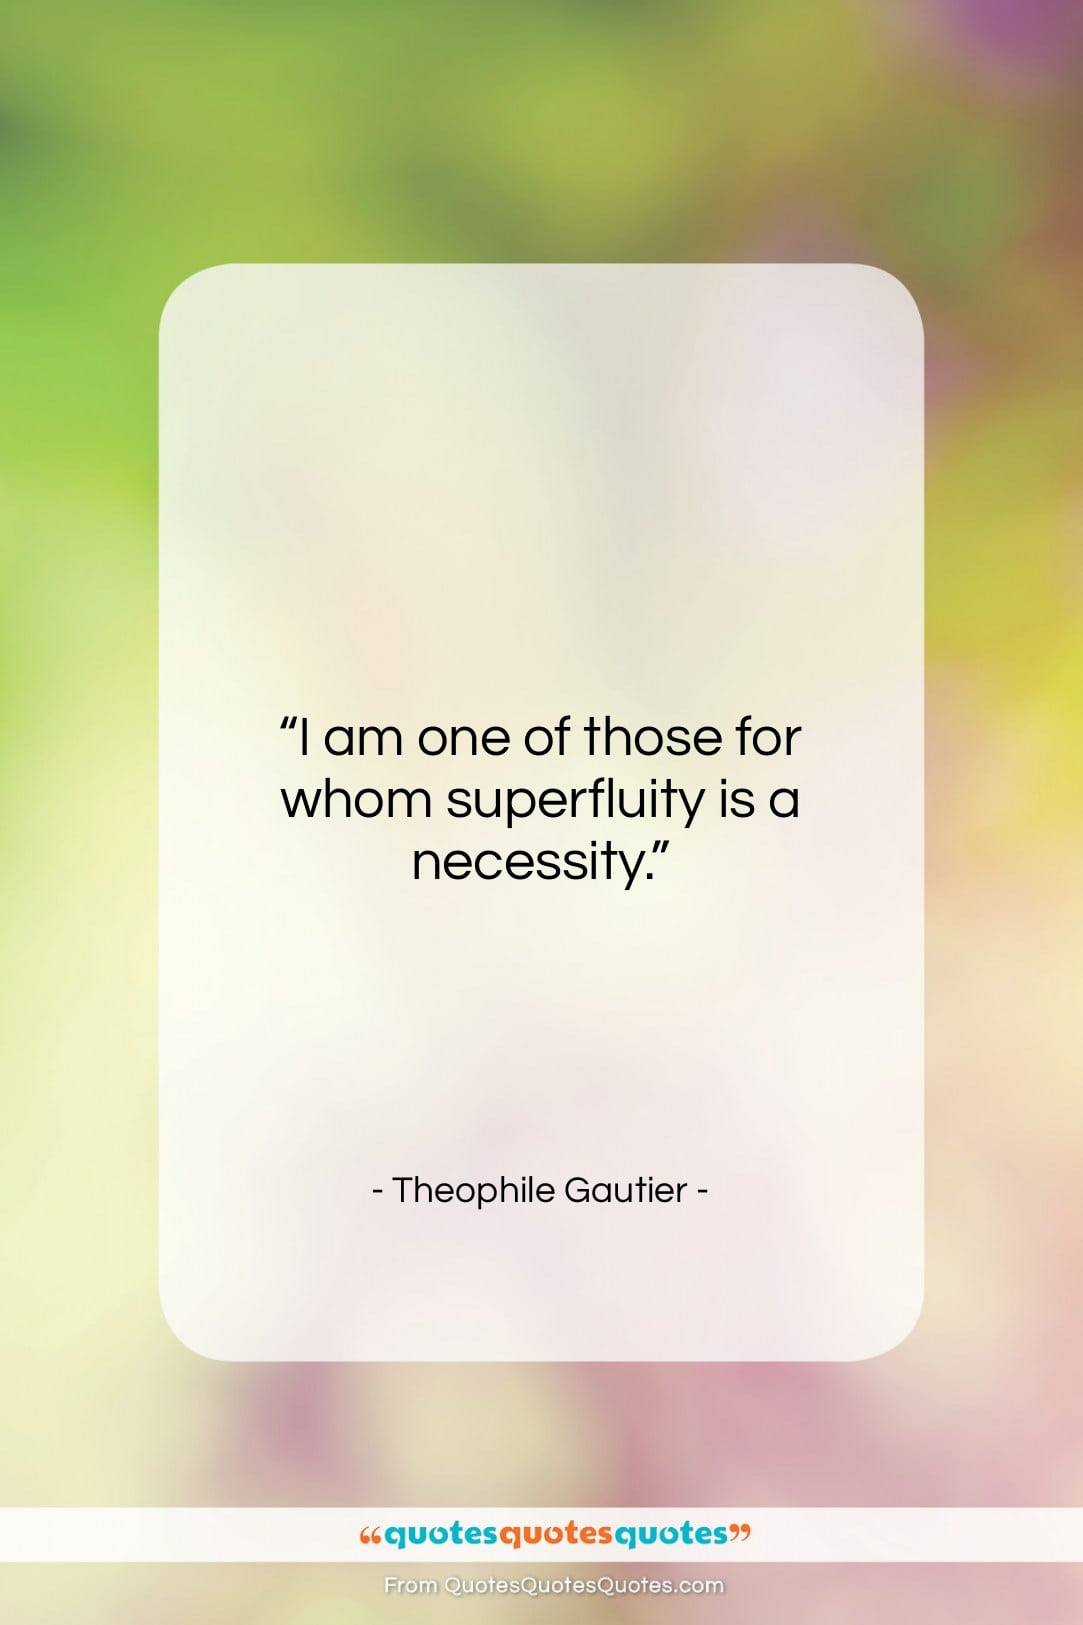 """Theophile Gautier quote: """"I am one of those for whom…""""- at QuotesQuotesQuotes.com"""